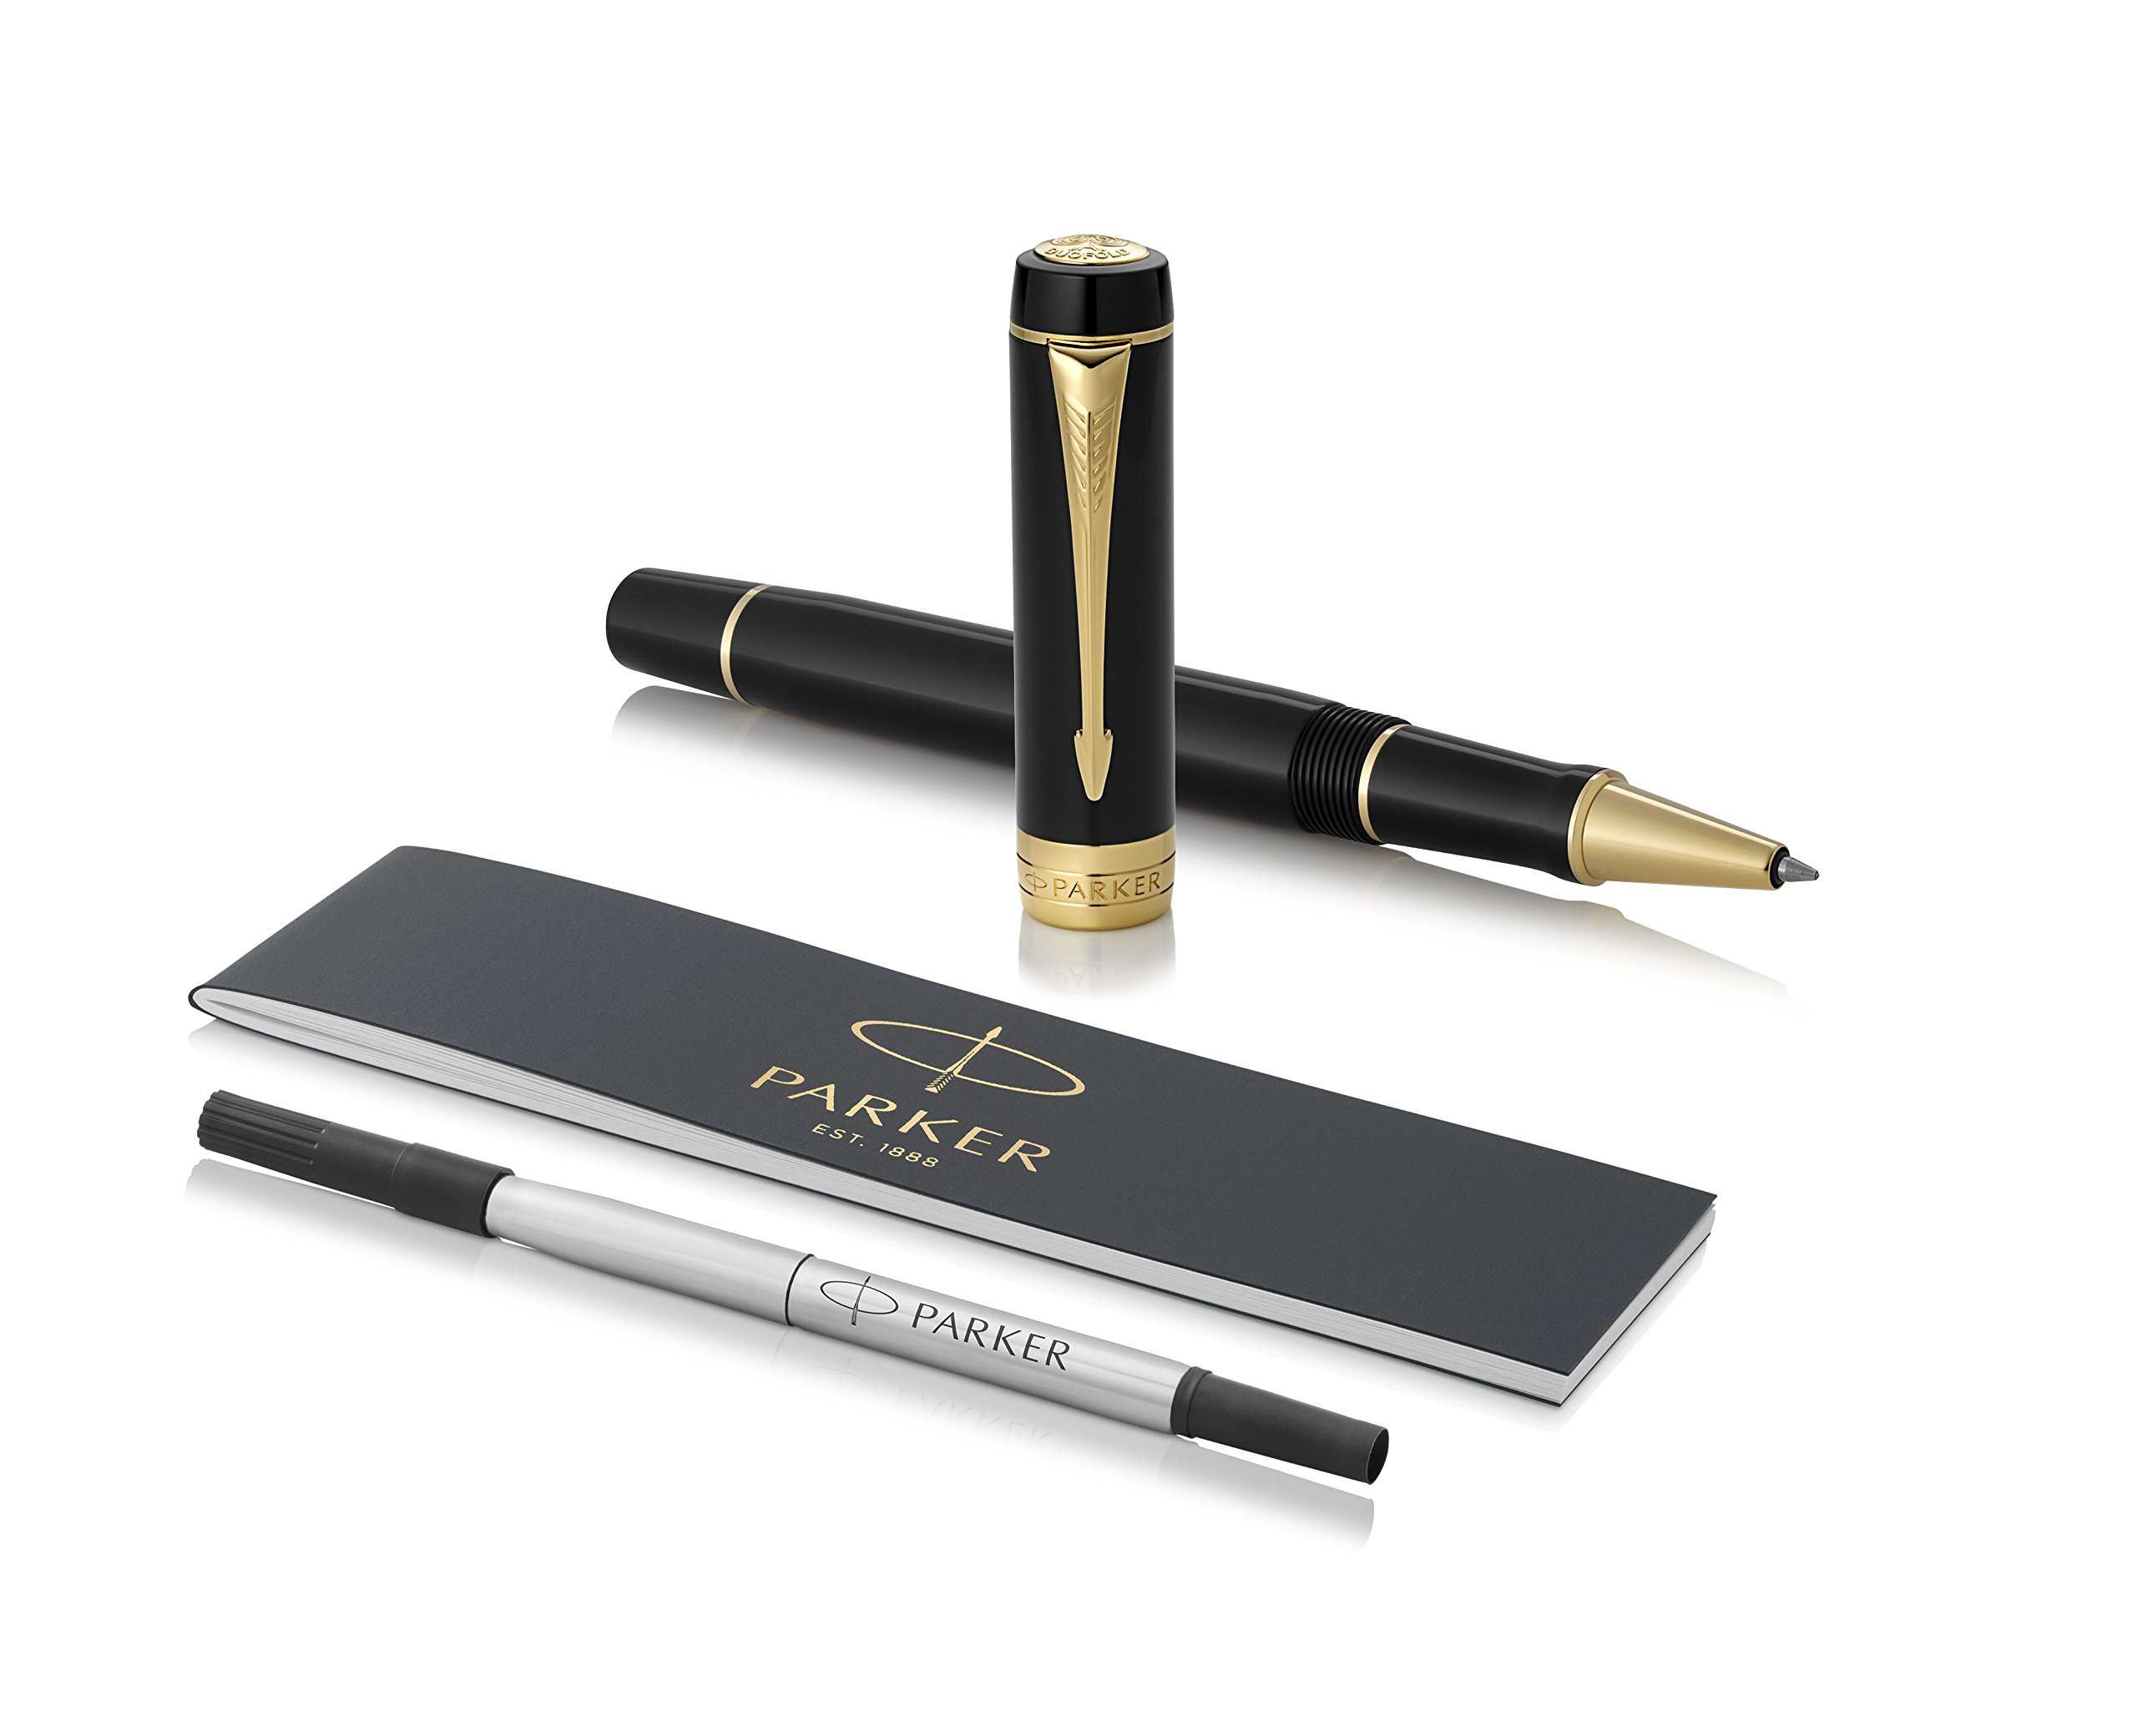 PARKER Duofold Rollerball Pen, Classic Black with Gold Trim, Fine Point Black Ink Refill